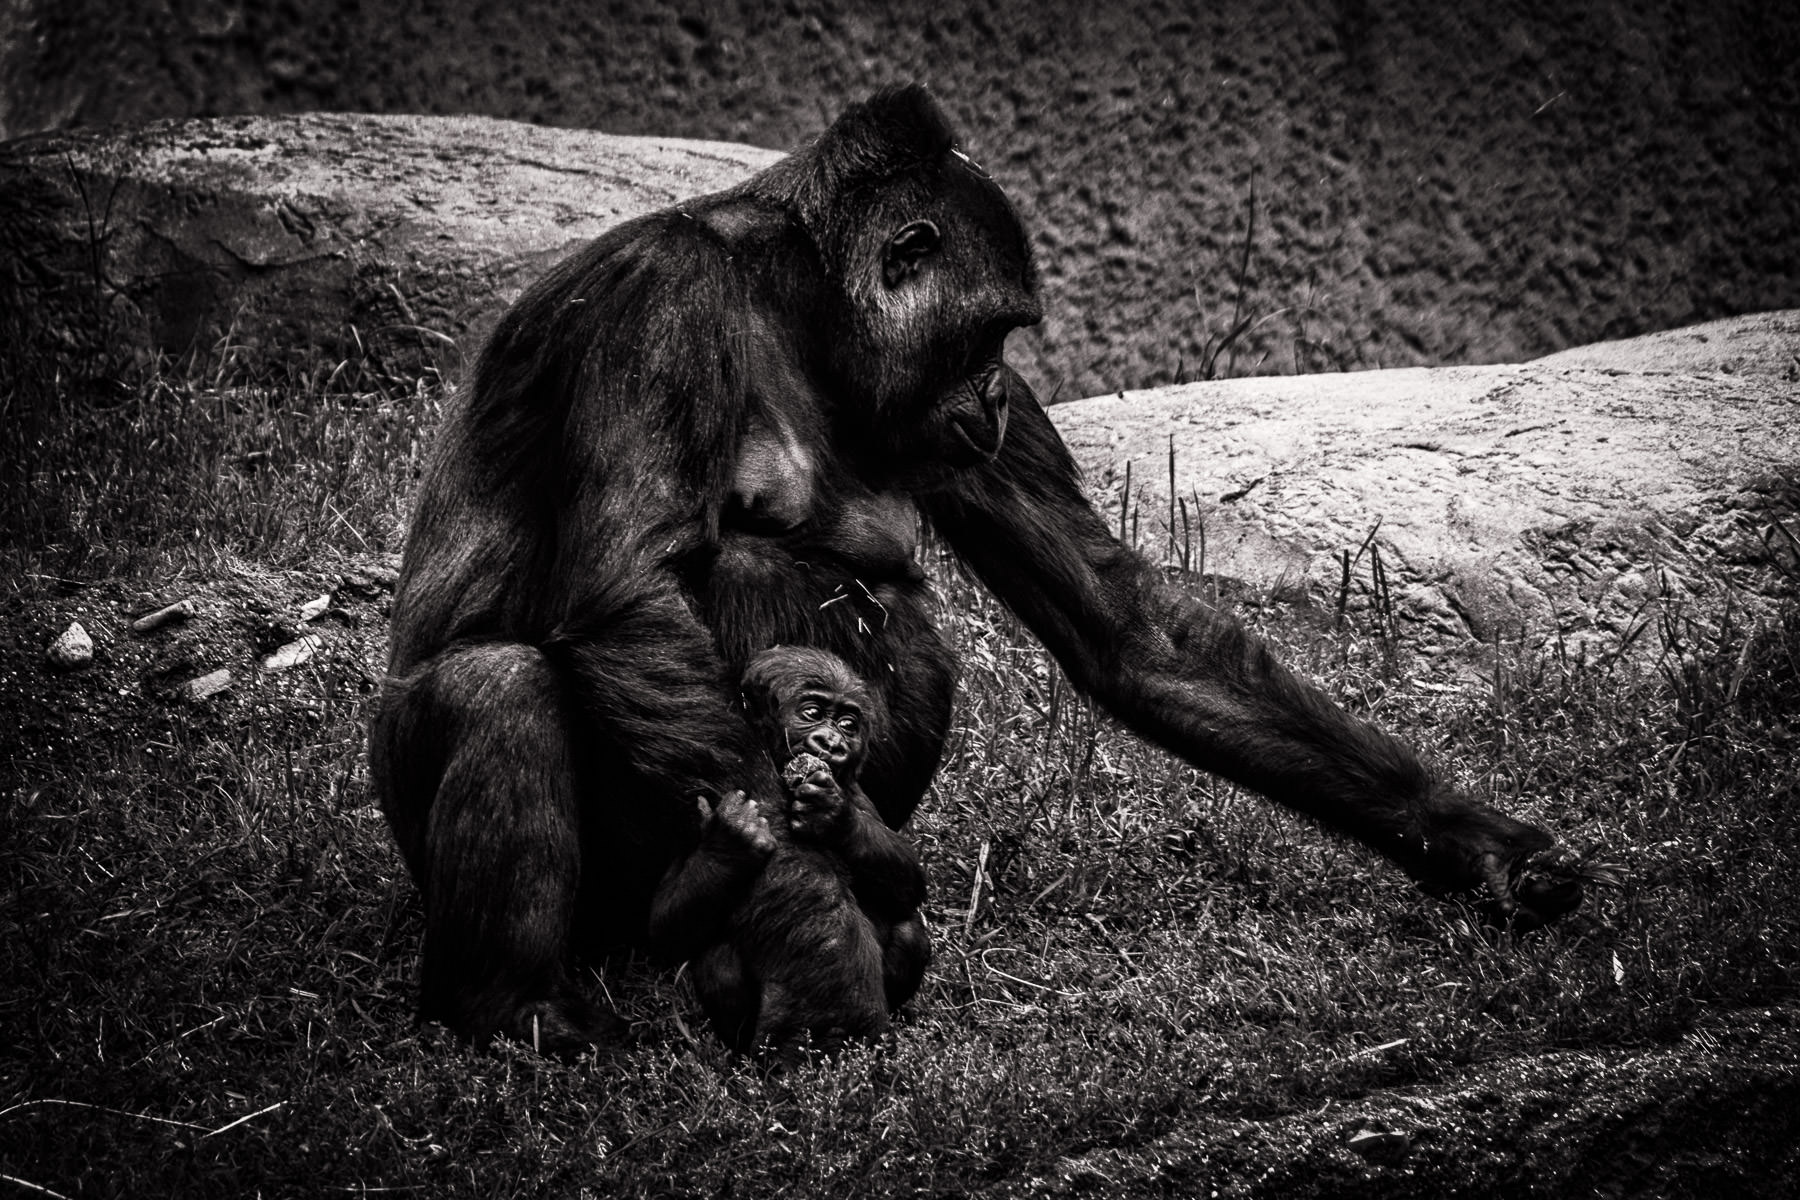 A mother gorilla and her young son at the Fort Worth Zoo, Texas.